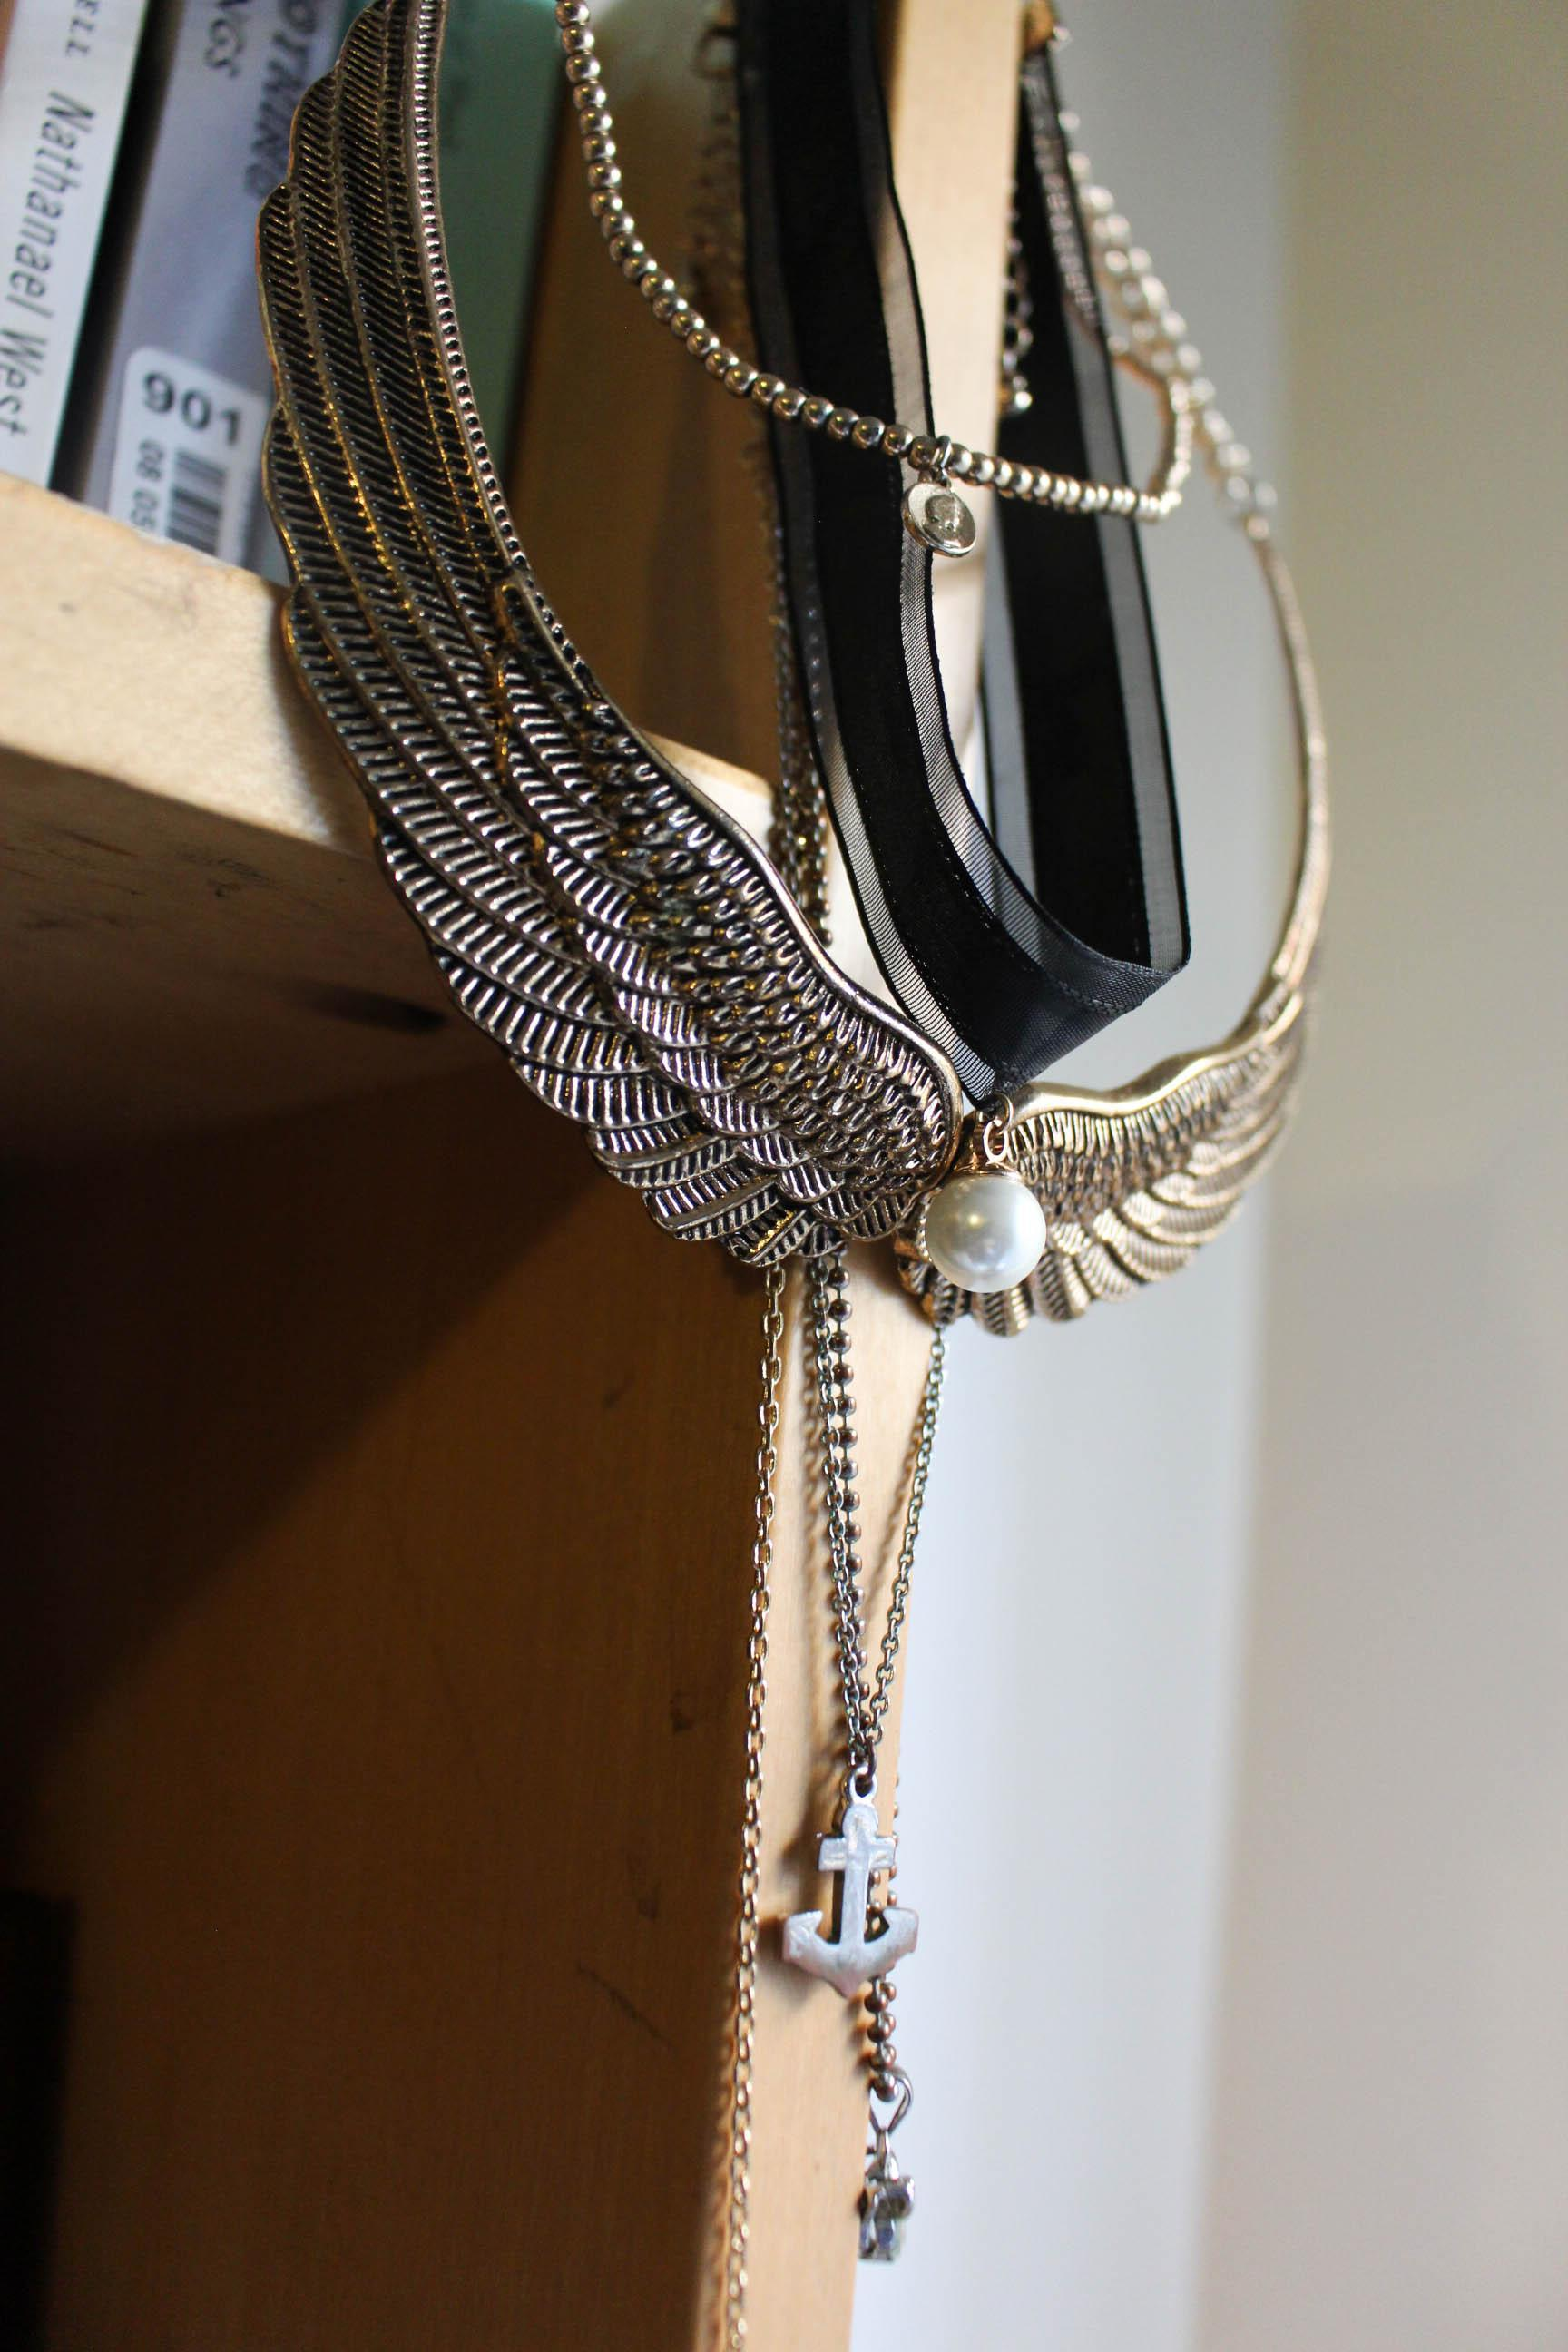 From the average chain necklace to chokers of all sizes, accessories are often questioned for their relevance.